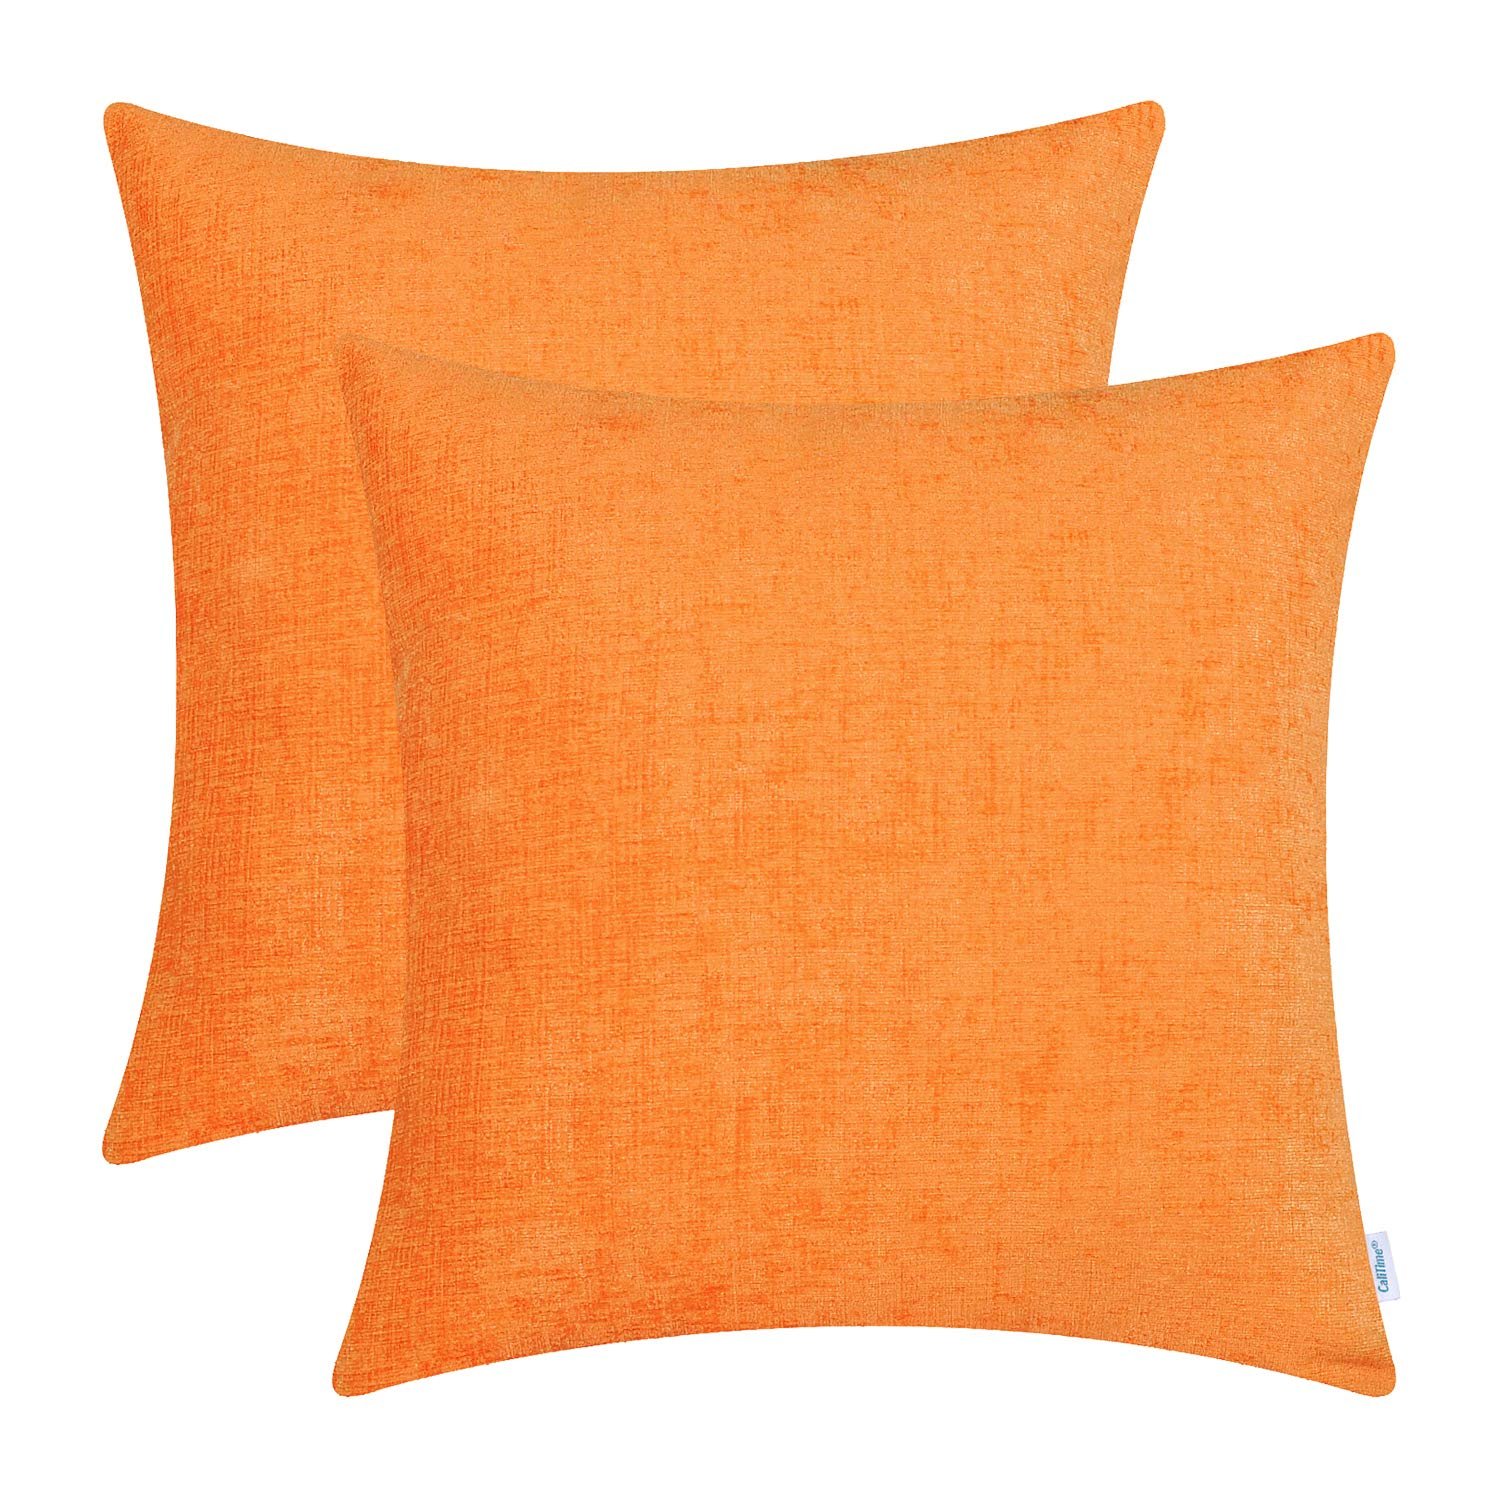 CaliTime Pack of 2 Cozy Throw Pillow Covers Cases for Couch Sofa Home Decoration Solid Dyed Soft Chenille 22 X 22 Inches Bright Orange